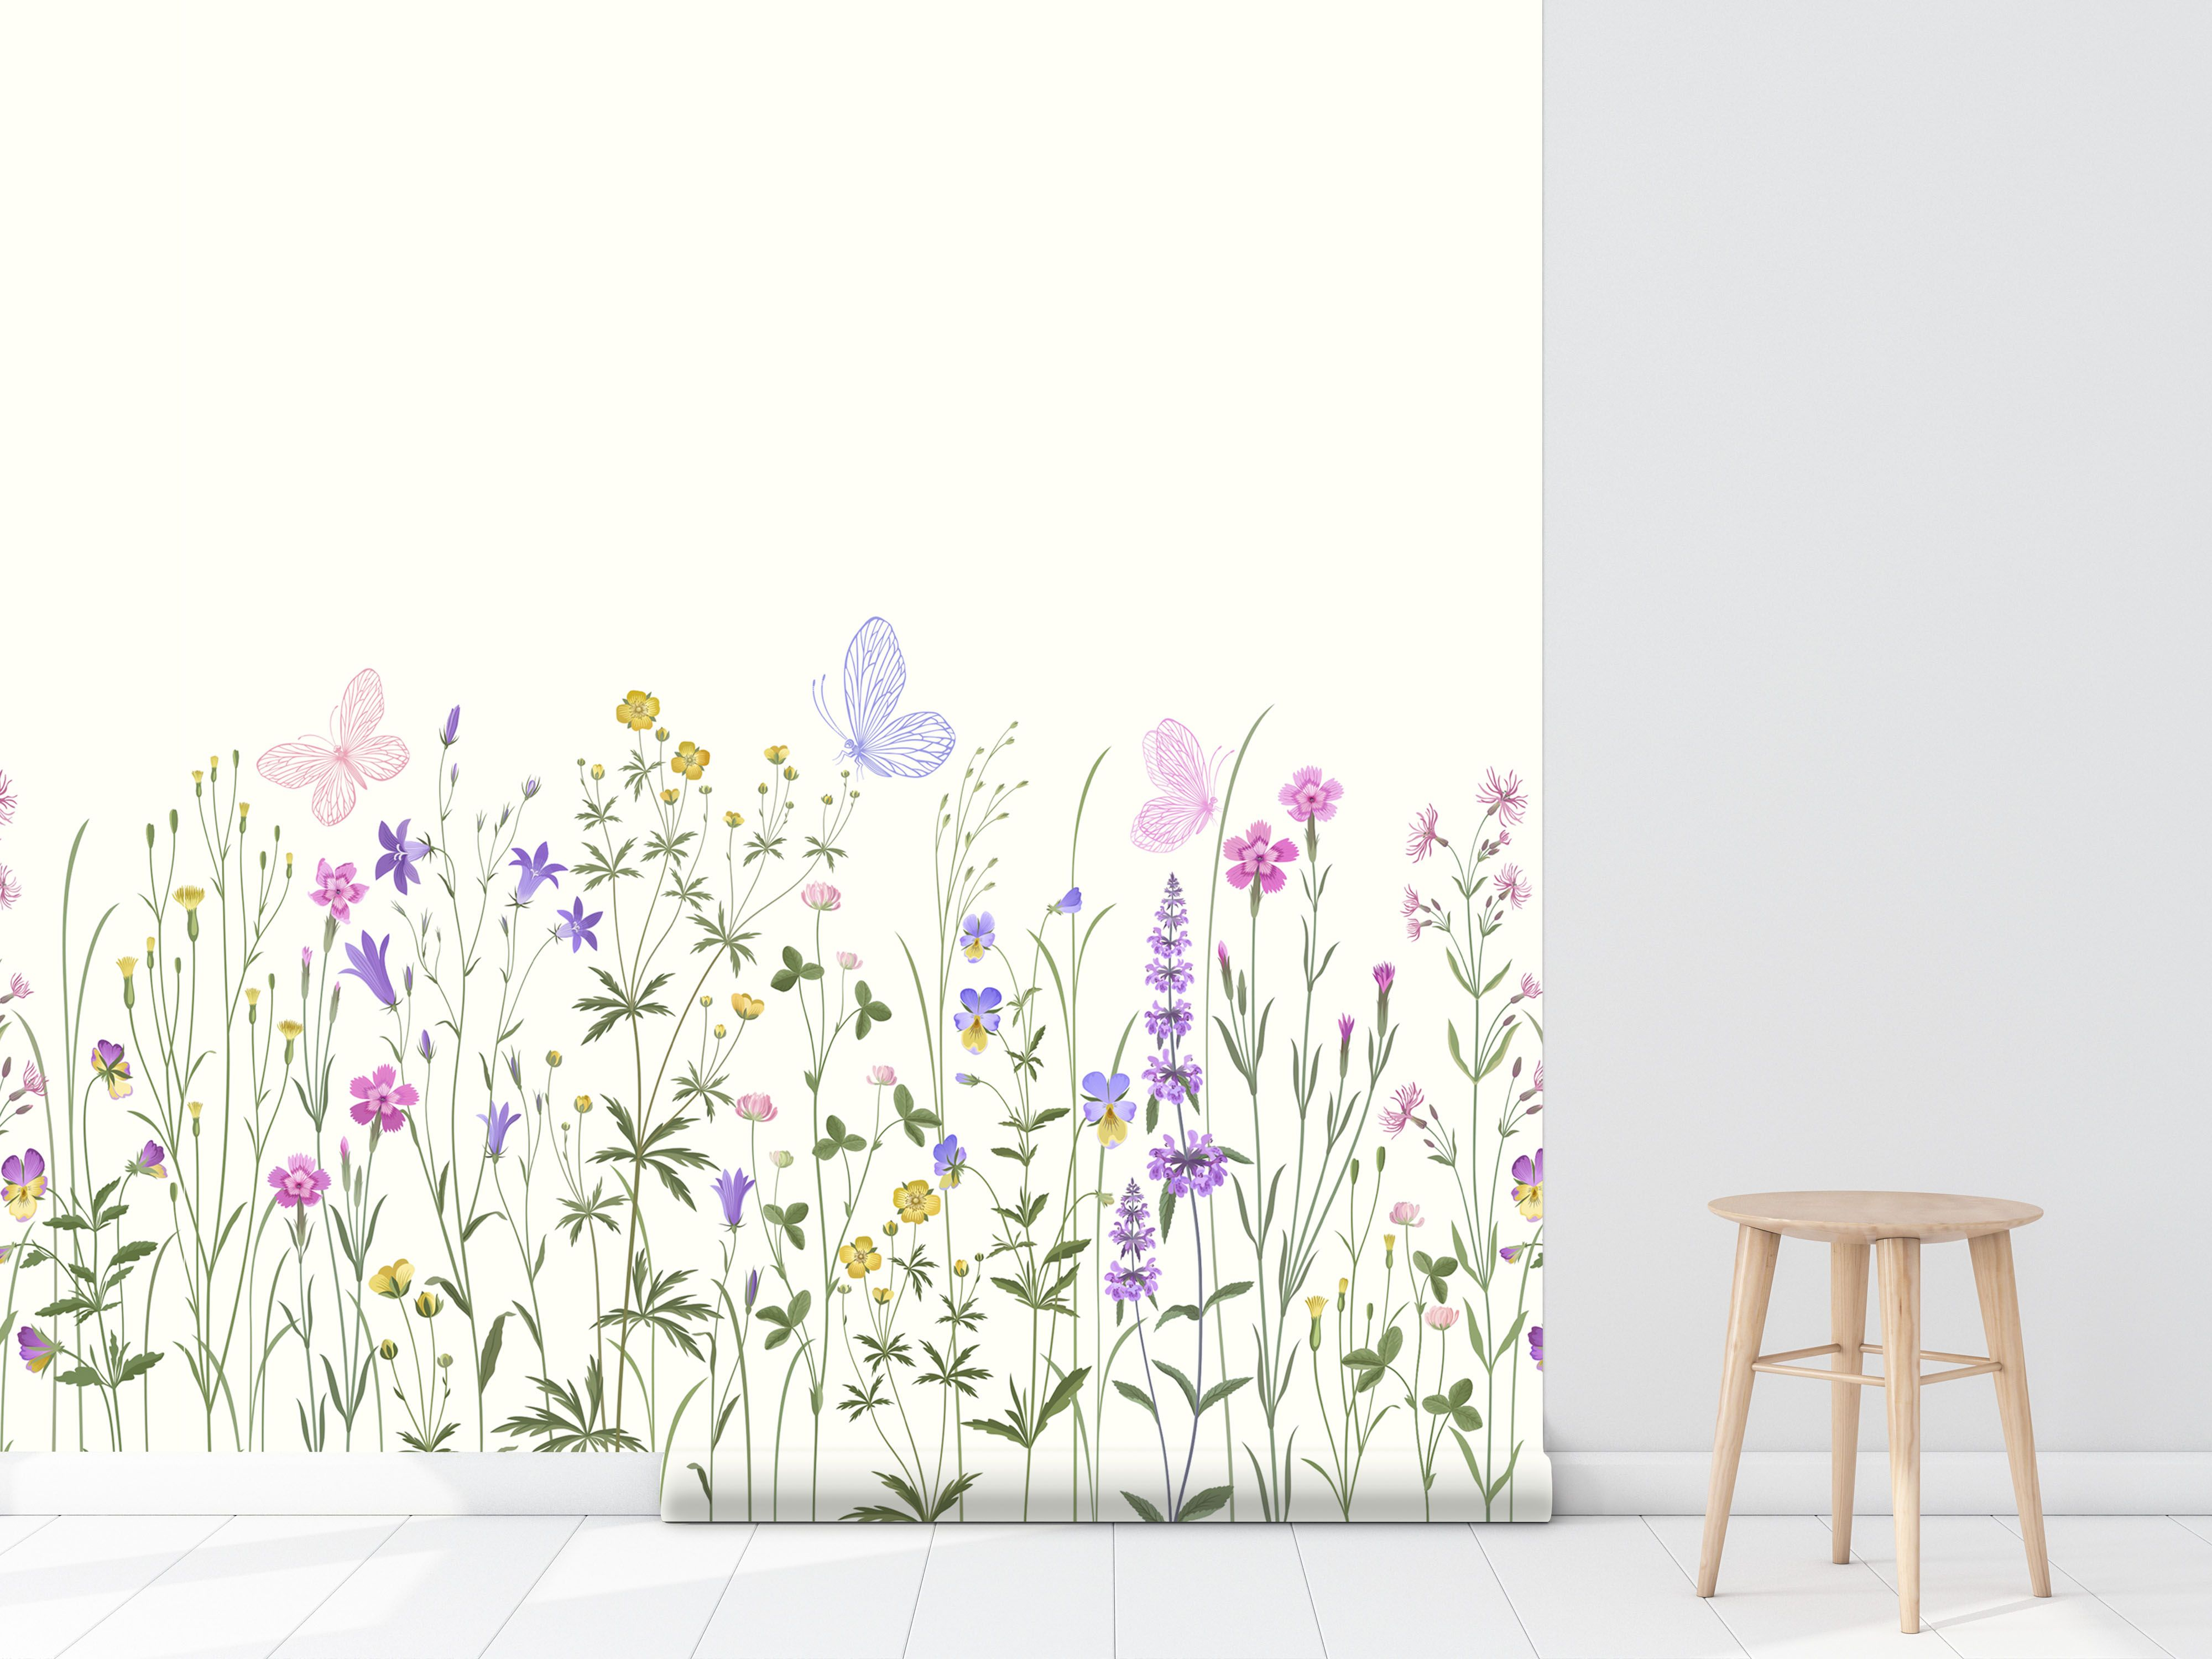 Floral Wallcovering By Green Planet Print Self Adhesive Pre Pasted Wallpaper Nursery Floral Decor Butterfly Wallpaper Self Adhesive Wallpaper Wallpaper